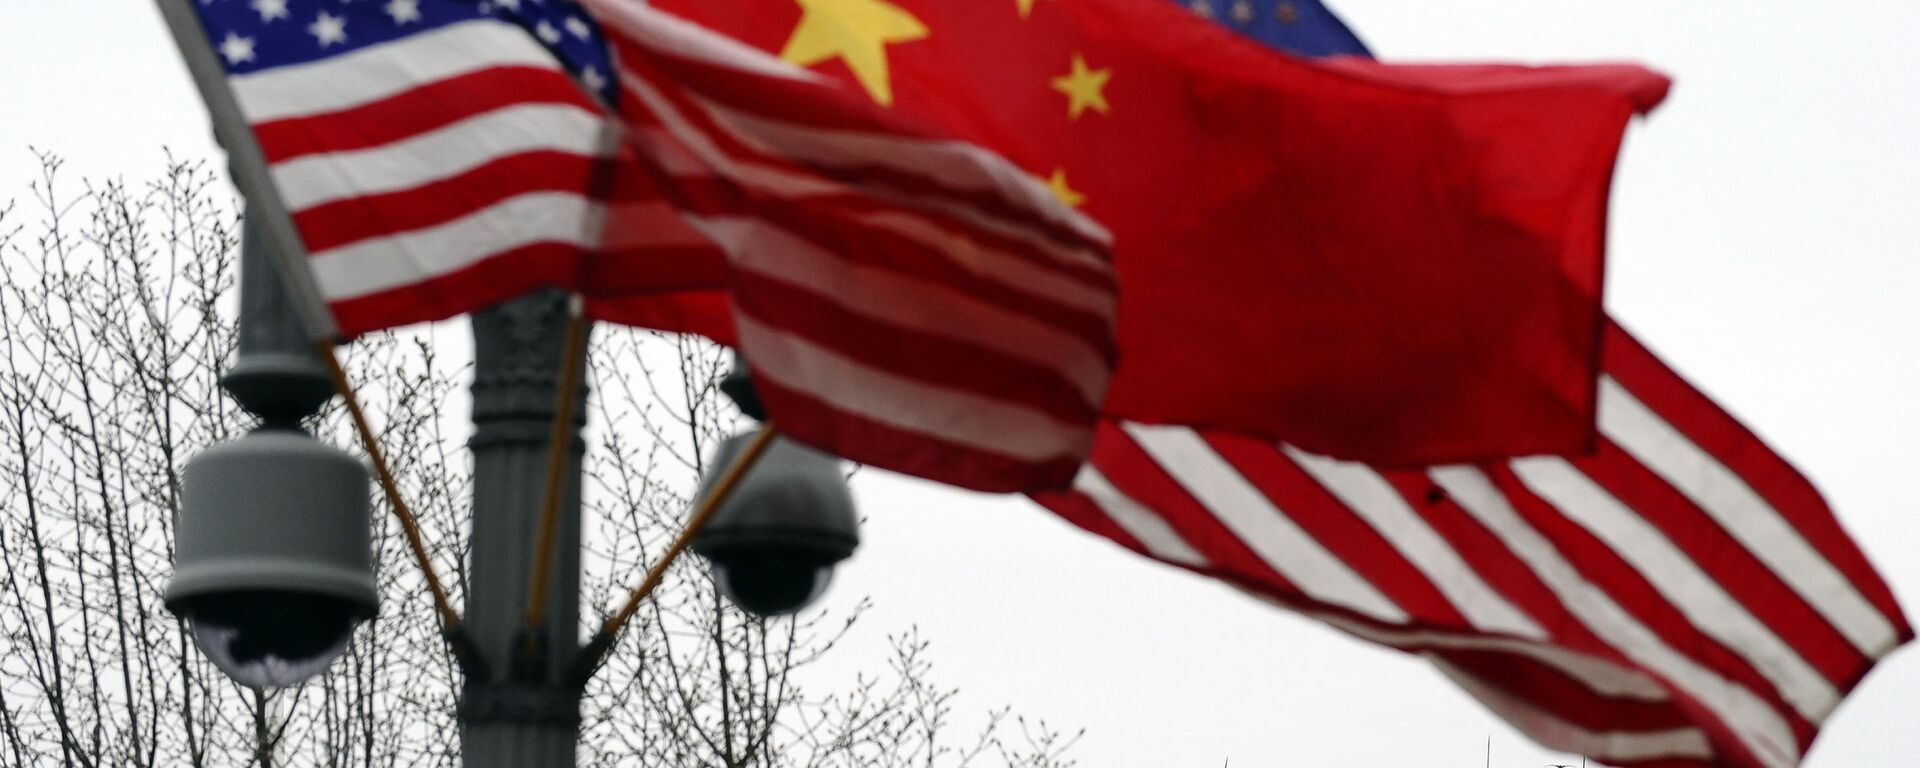 (FILES) In this file photo taken on January 17, 2011, a Secret Service agent guards his post on the roof of the White House as a lamp post is adorned with Chinese and US national flags in Washington, DC - Sputnik International, 1920, 26.07.2021